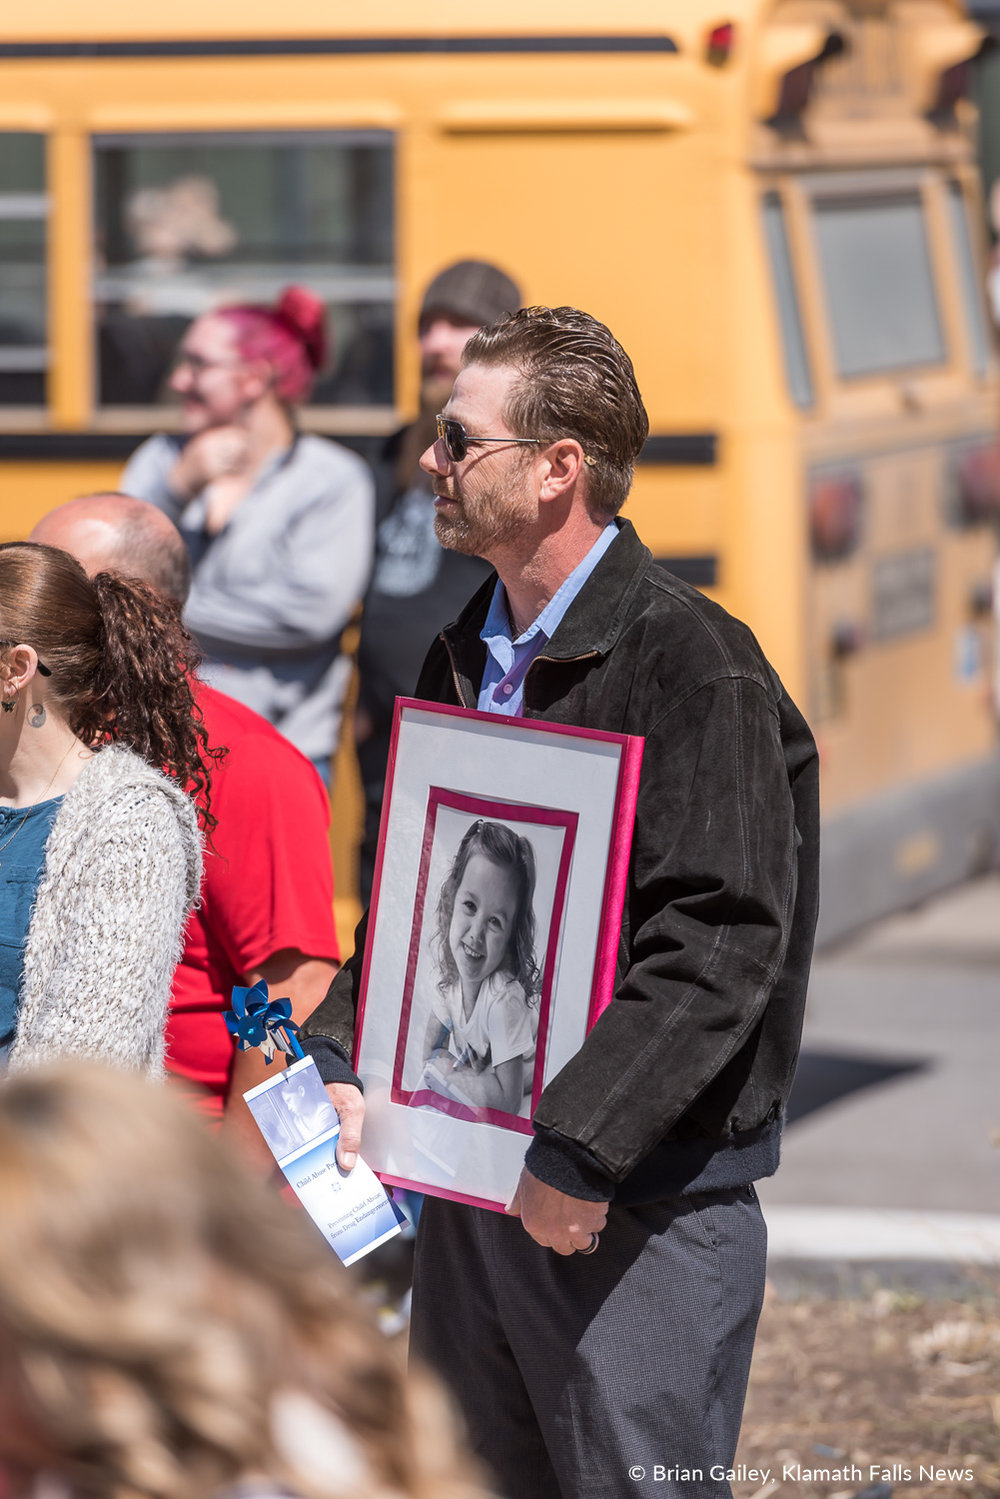 A man stands with a portrait of a child 200 inside Sugarman's Corner in Downtown Klamath Falls to celebrate a Day of Hope. Hope that child abuse can be eradicated. April 4, 2018 (Brian Gailey)